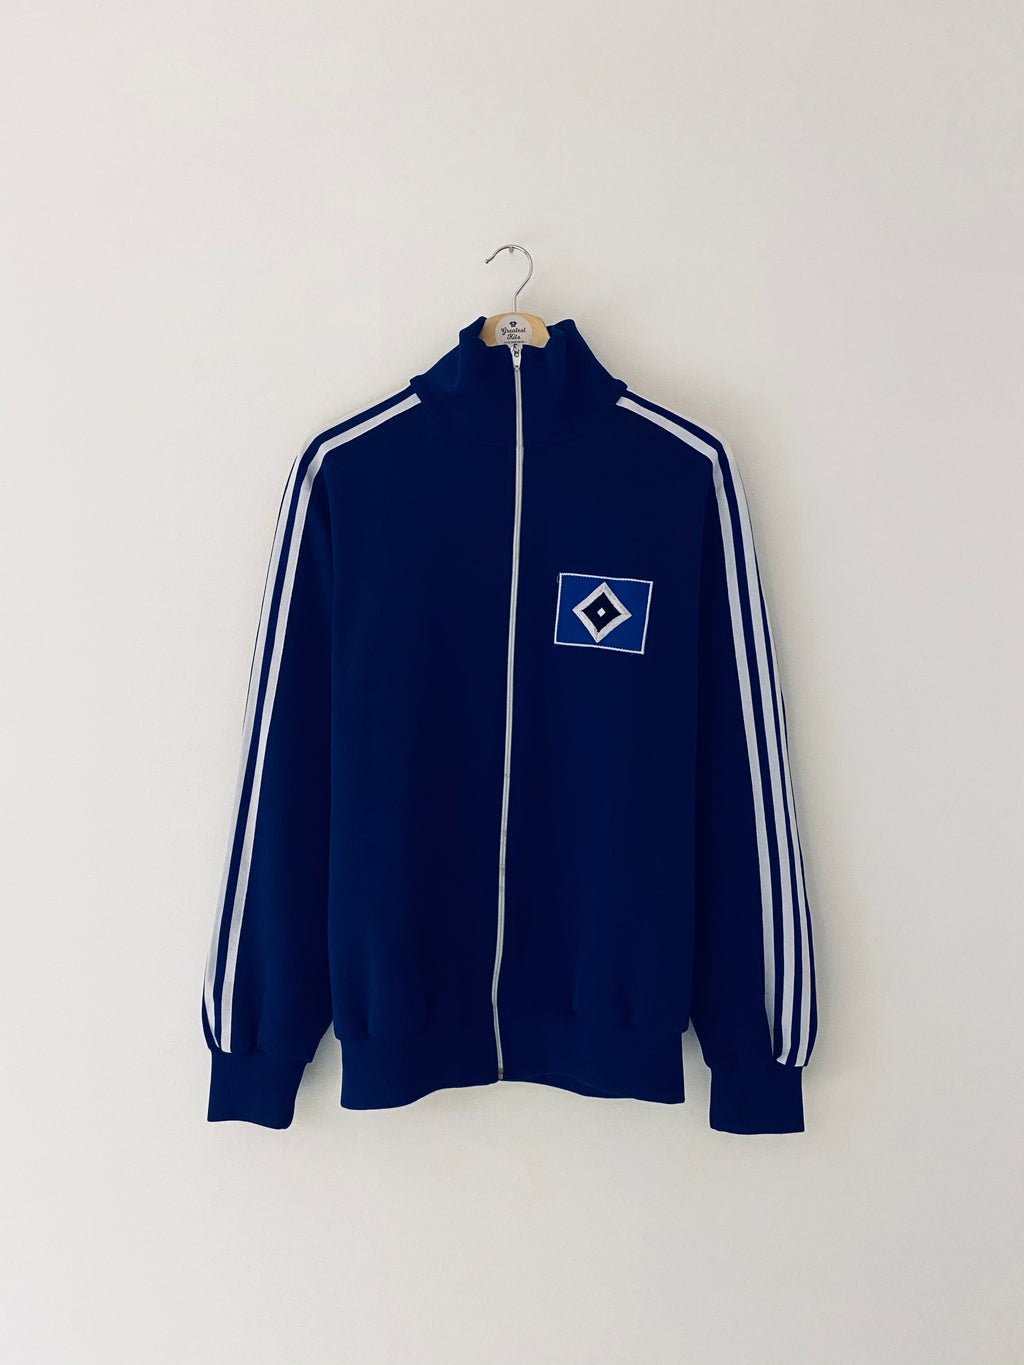 1981/82 Hamburg Track Jacket (XL) 9/10